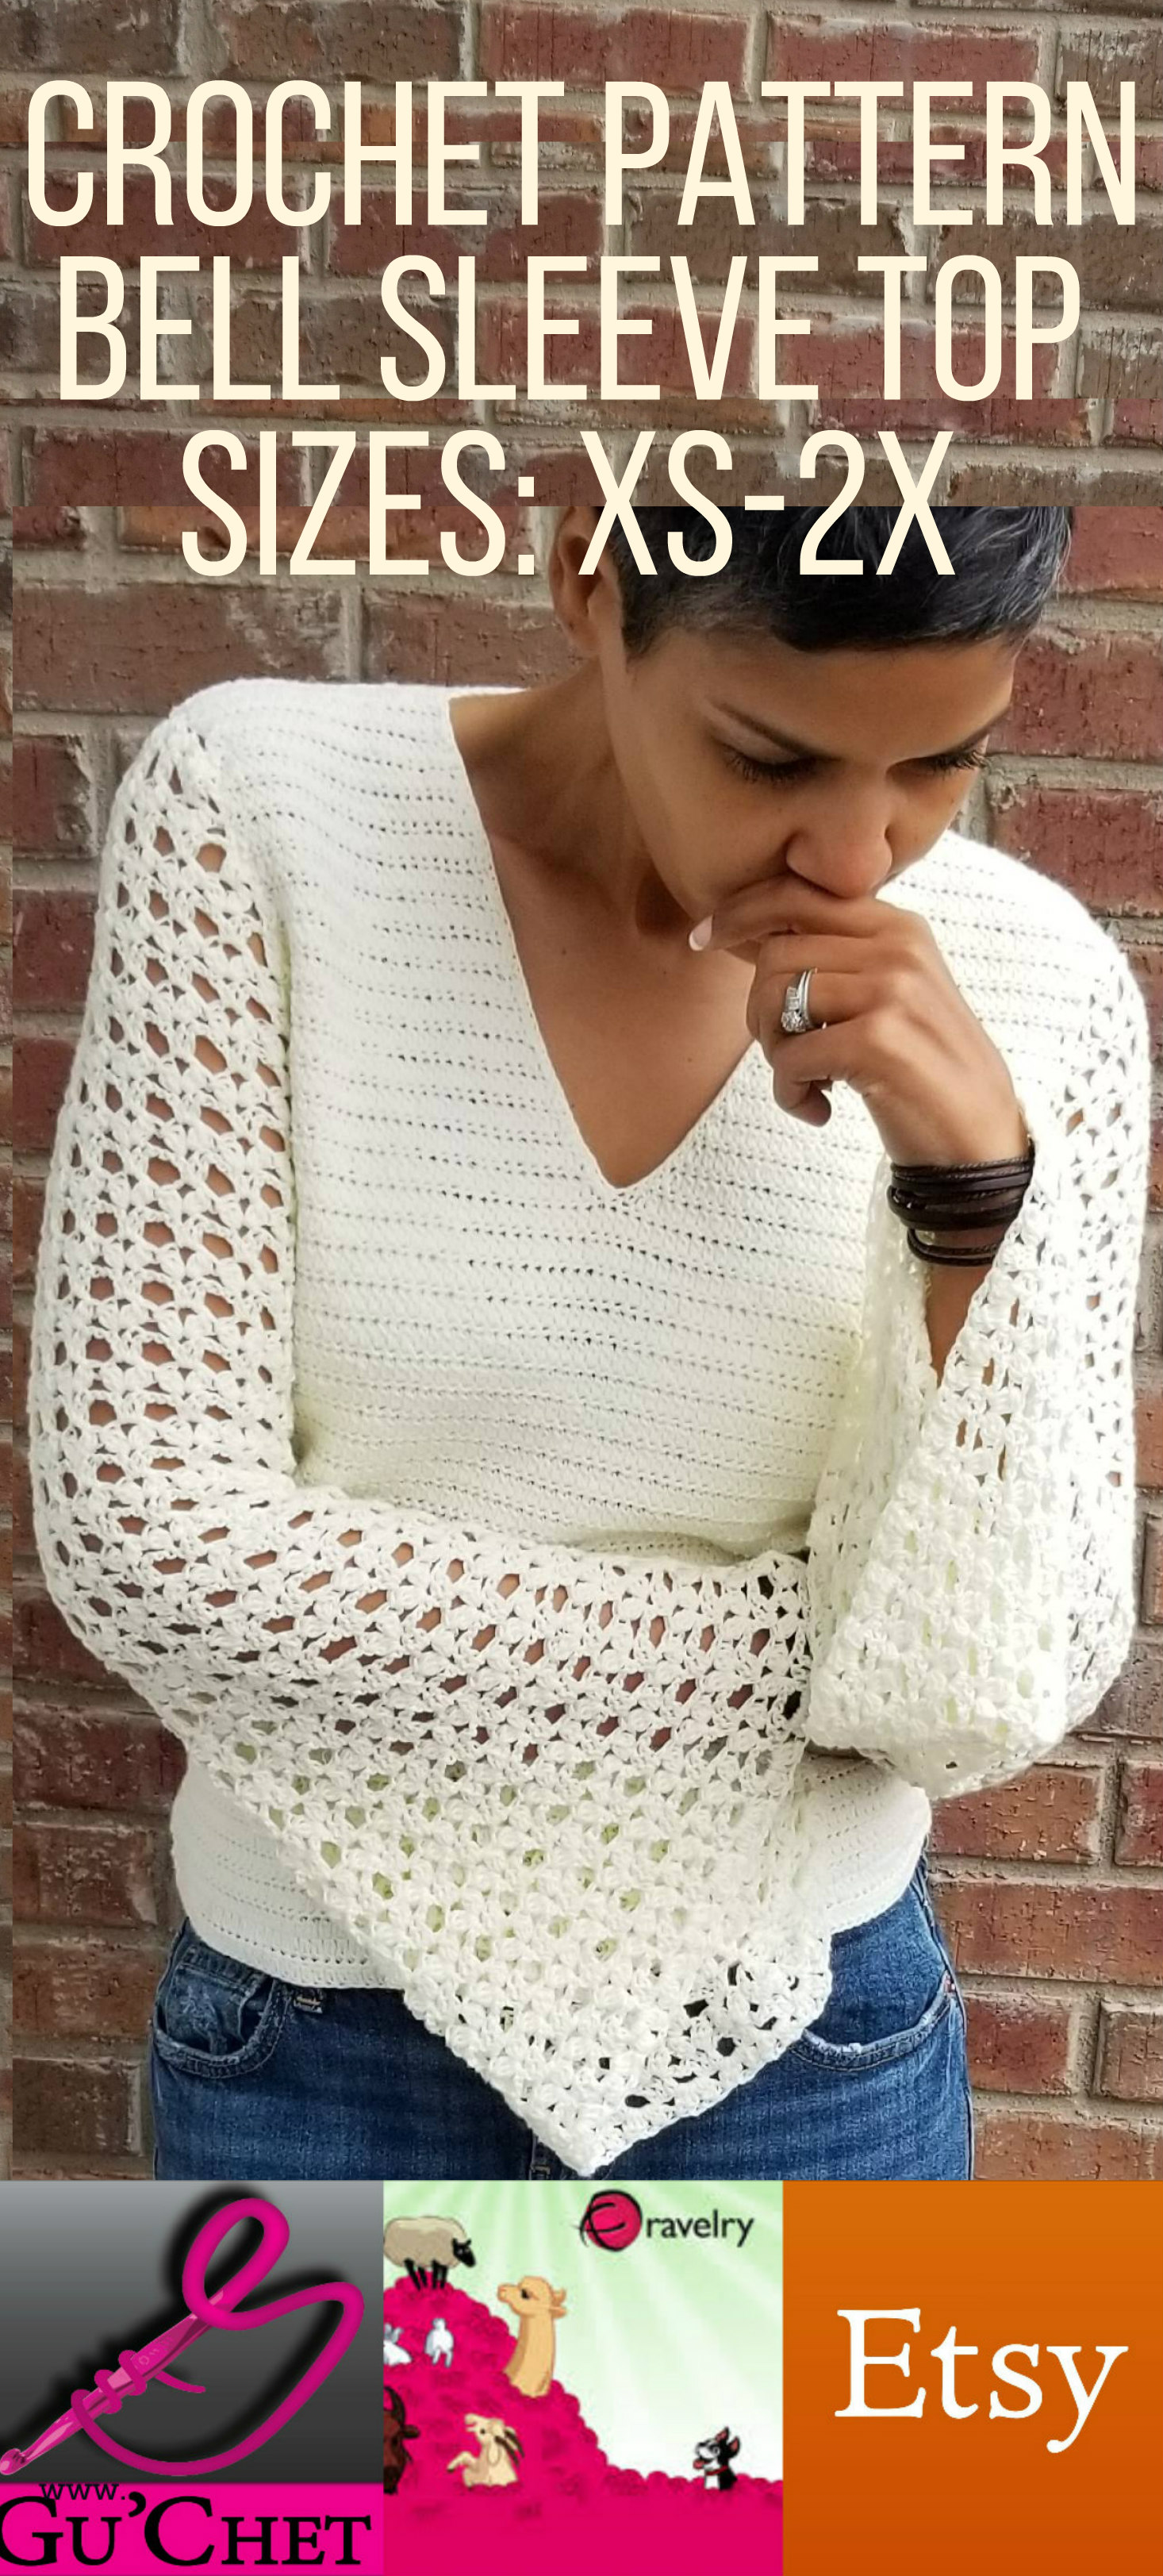 7_Crochet Top Pattern by GuChet_Bell Sleeve Top_23.jpg